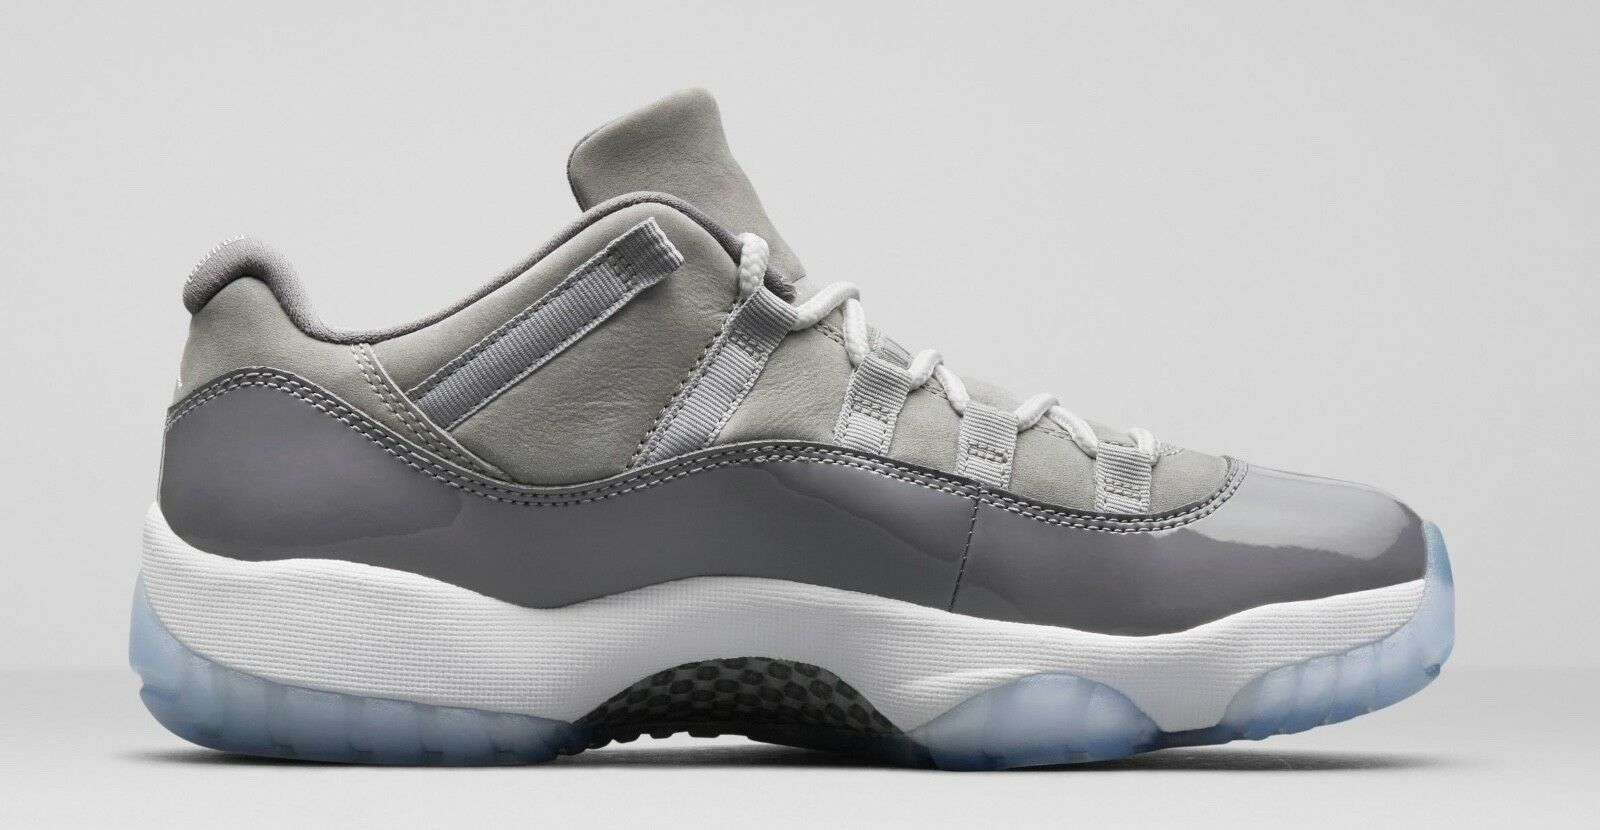 Mens Brand New Air Jordan 11 Retro Low  Cool Grey  Fashion Sneakers